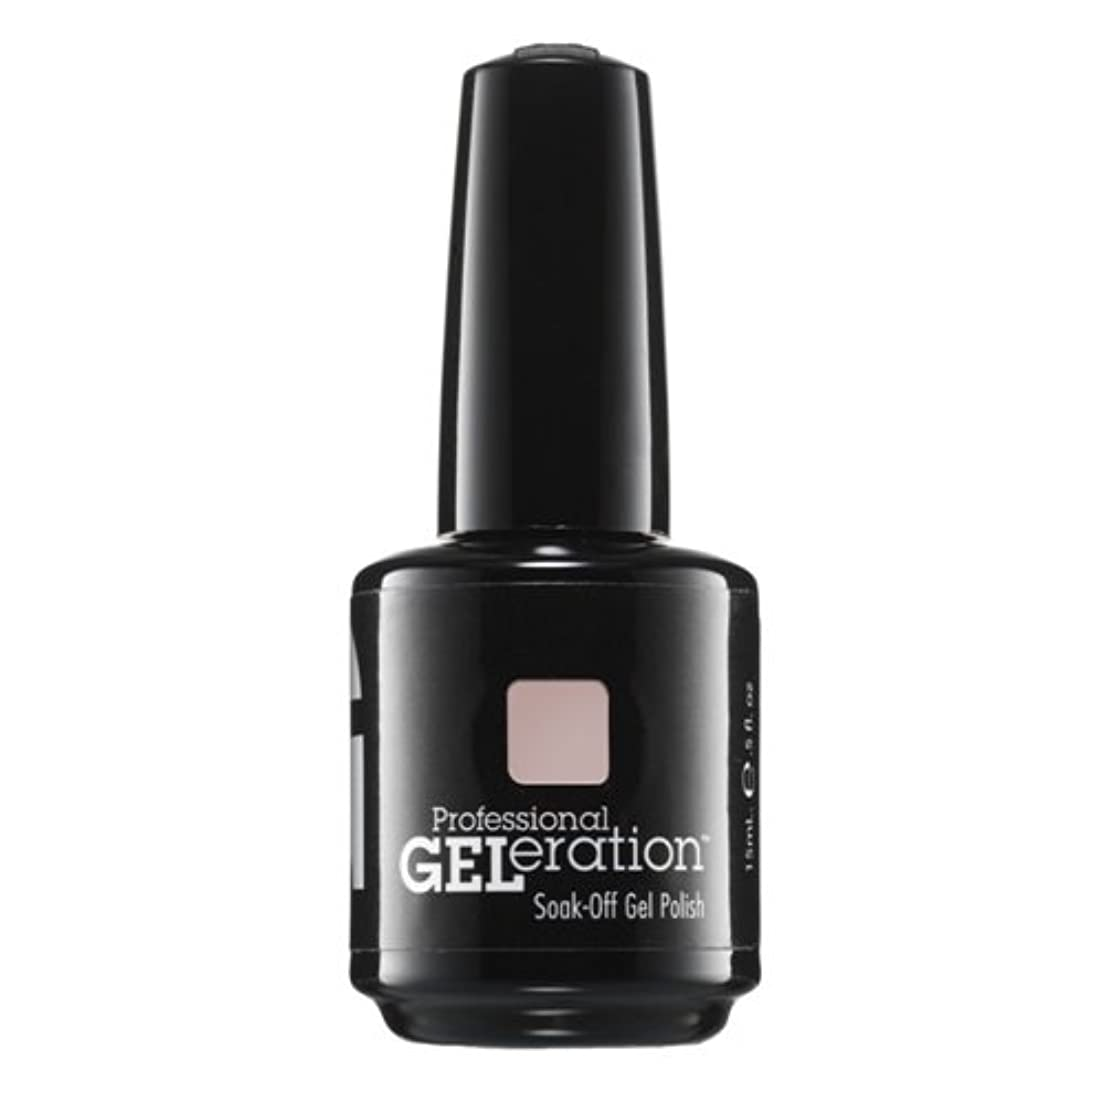 ピアノを弾く栄光の殺しますJessica GELeration Gel Polish - 2017 Silhouette Collection - Tease - 15ml / 0.5oz